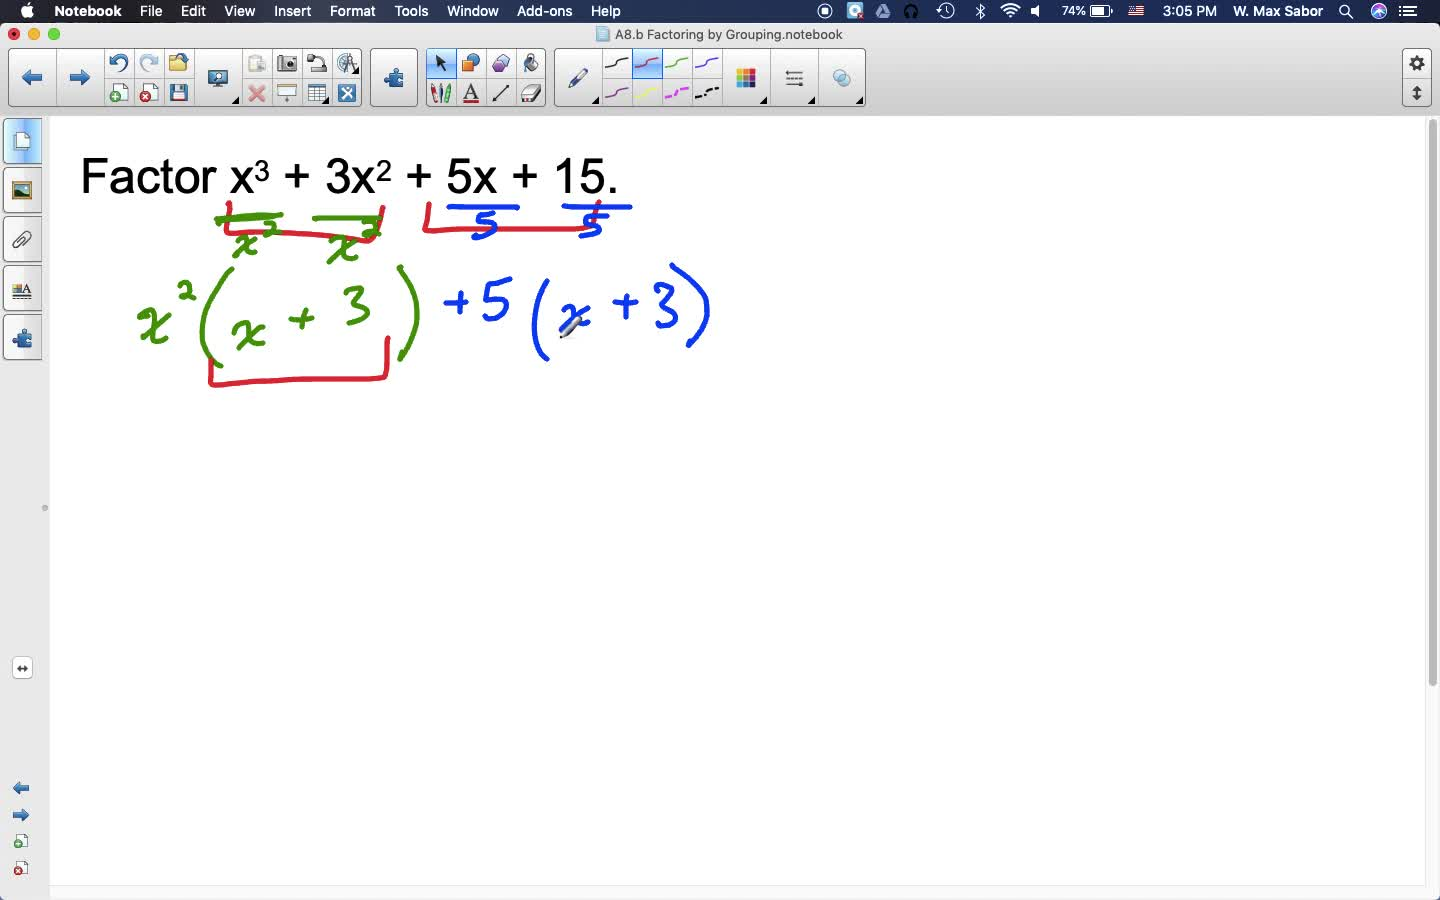 A8.b Factoring by Grouping